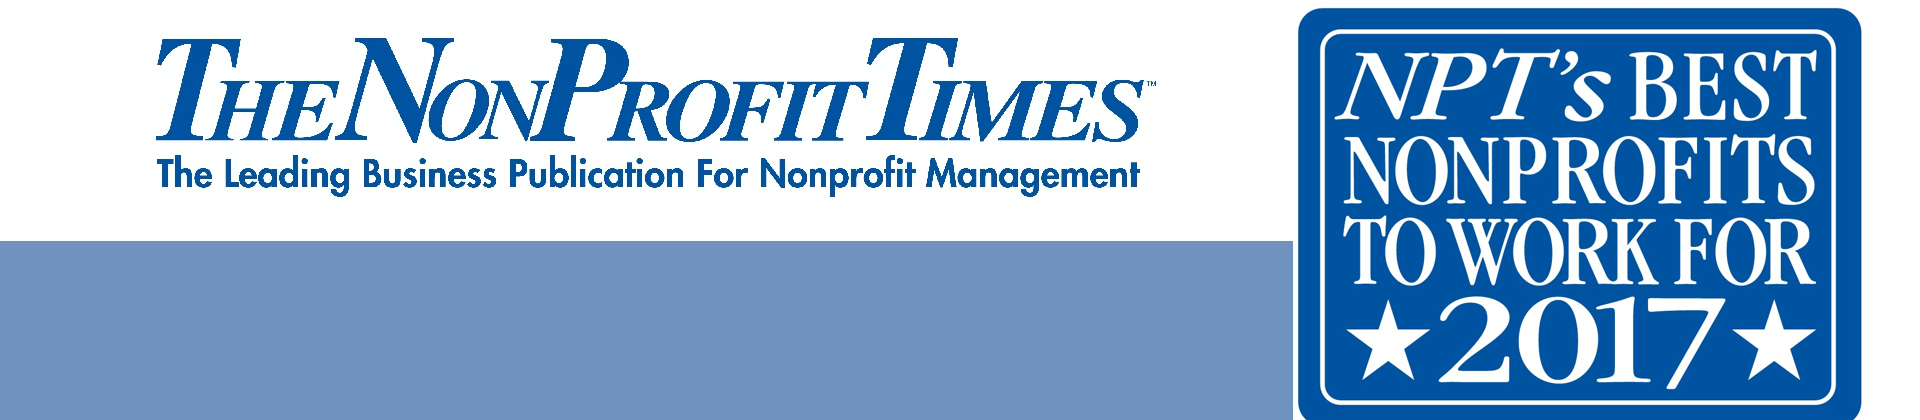 CTR Awarded Best Nonprofits To Work For 3 Years in a Row